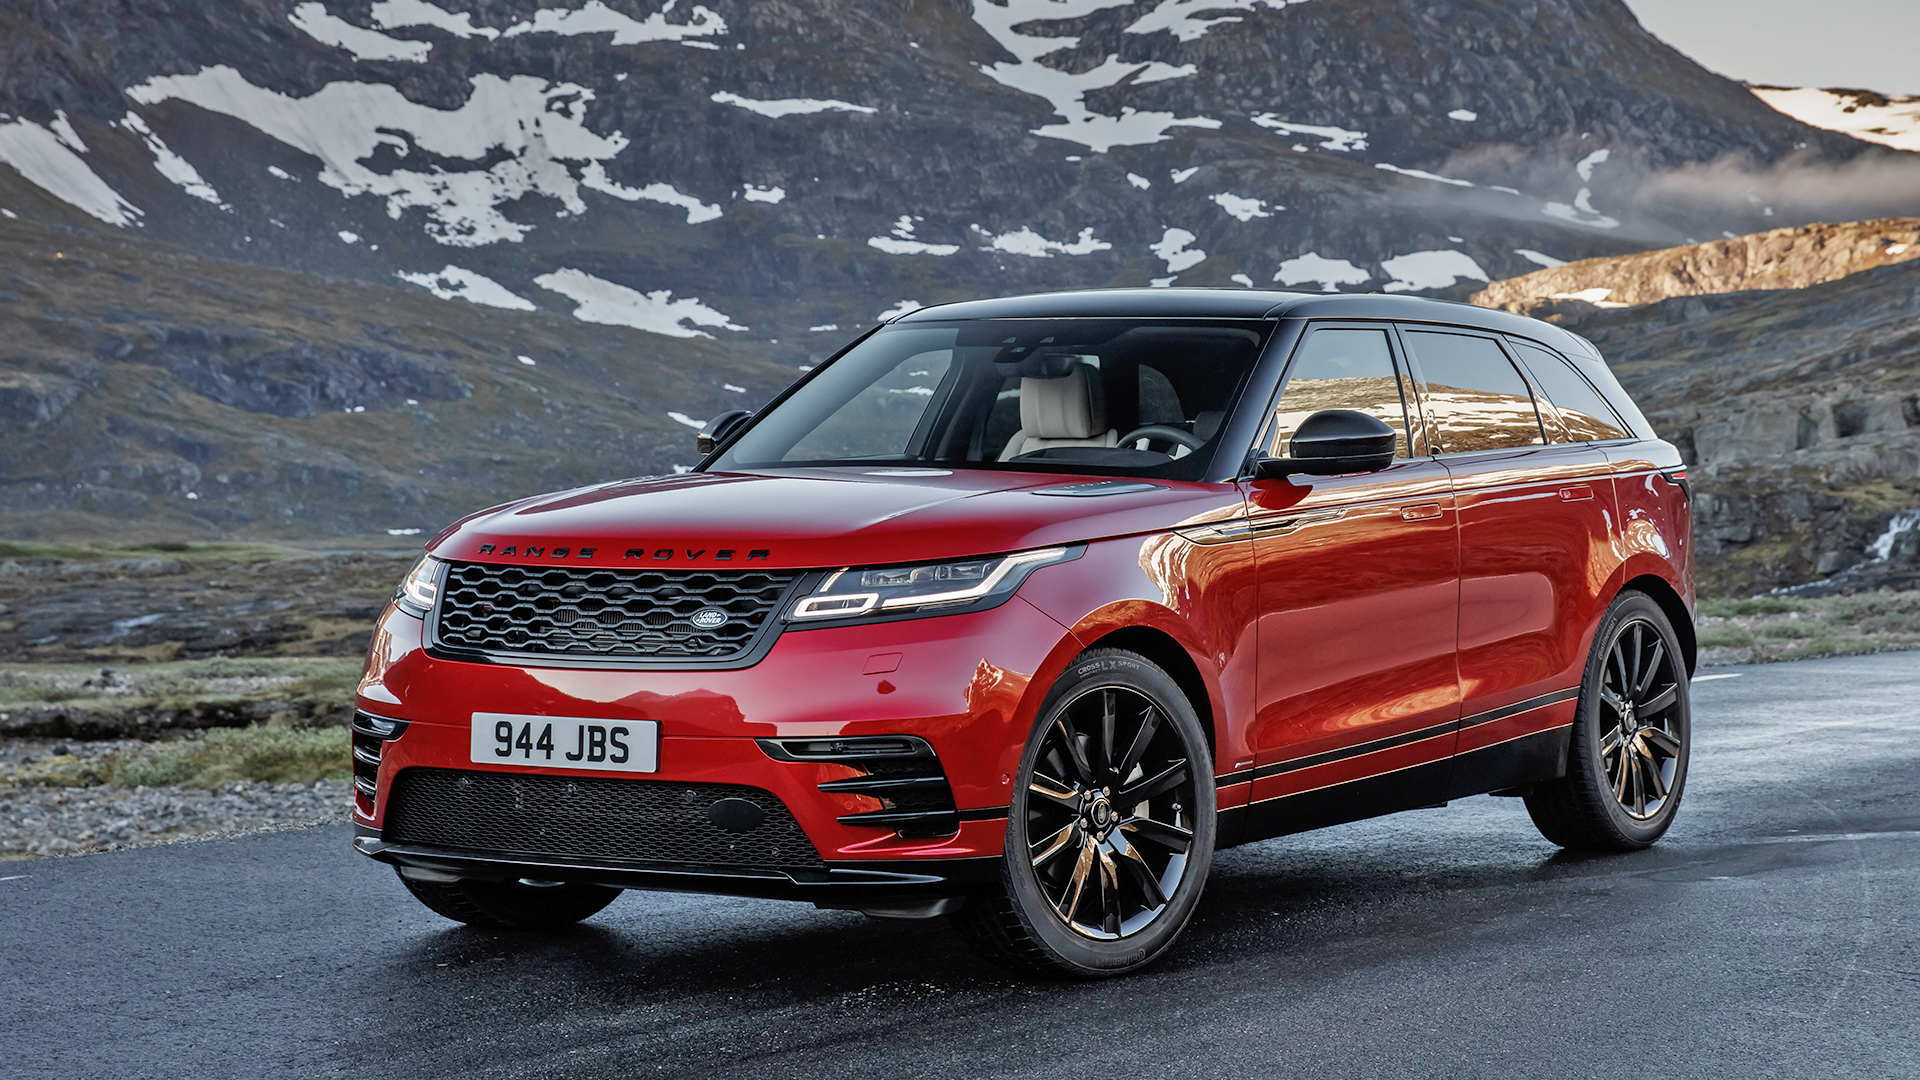 Range Rover Velar Price In India Specification Review Mileage Other Details